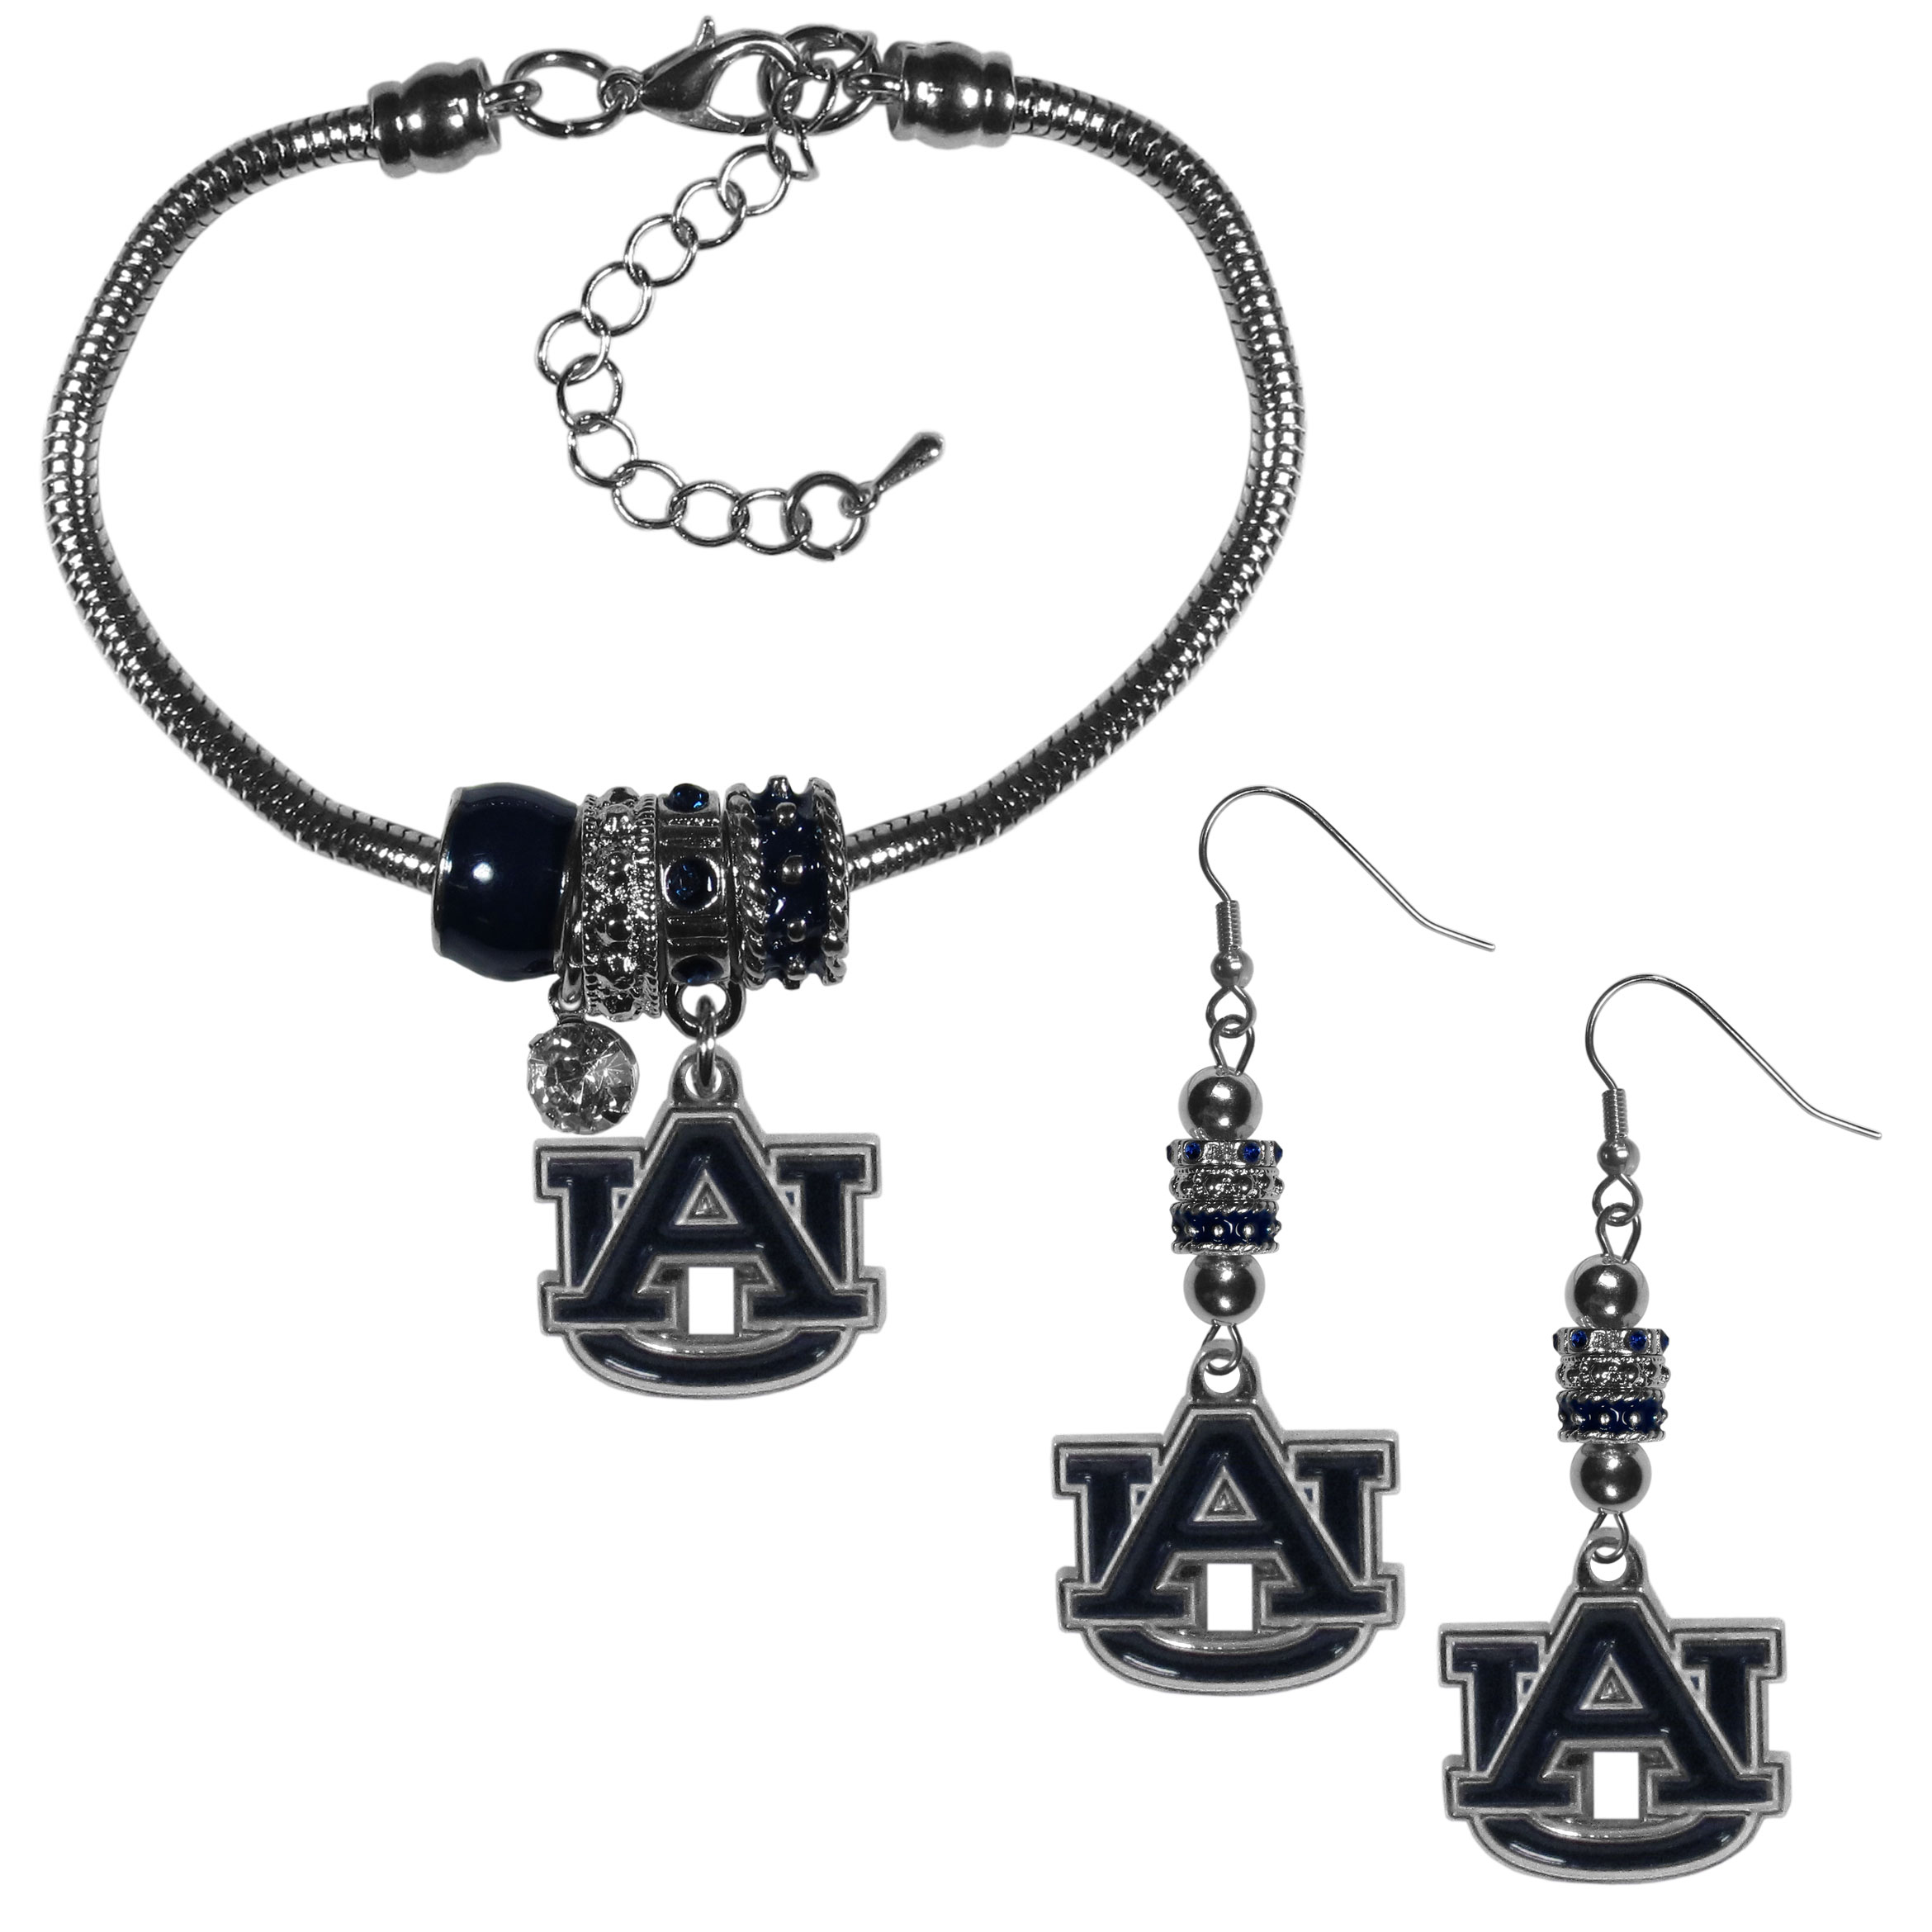 Auburn Tigers Euro Bead Earrings and Bracelet Set - We combine the popular Euro bead style with your love of the Auburn Tigers with this beautiful jewelry set that includes earrings and a matching bracelet. The stylish earrings feature hypoallergenic, nickel free fishhook posts and 3 team colored Euro beads and a metal team charm. The matching snake chain bracelet is 7.5 inches long with a 2 inch extender and 4 Euro beads with a rhinestone charm and team charm.